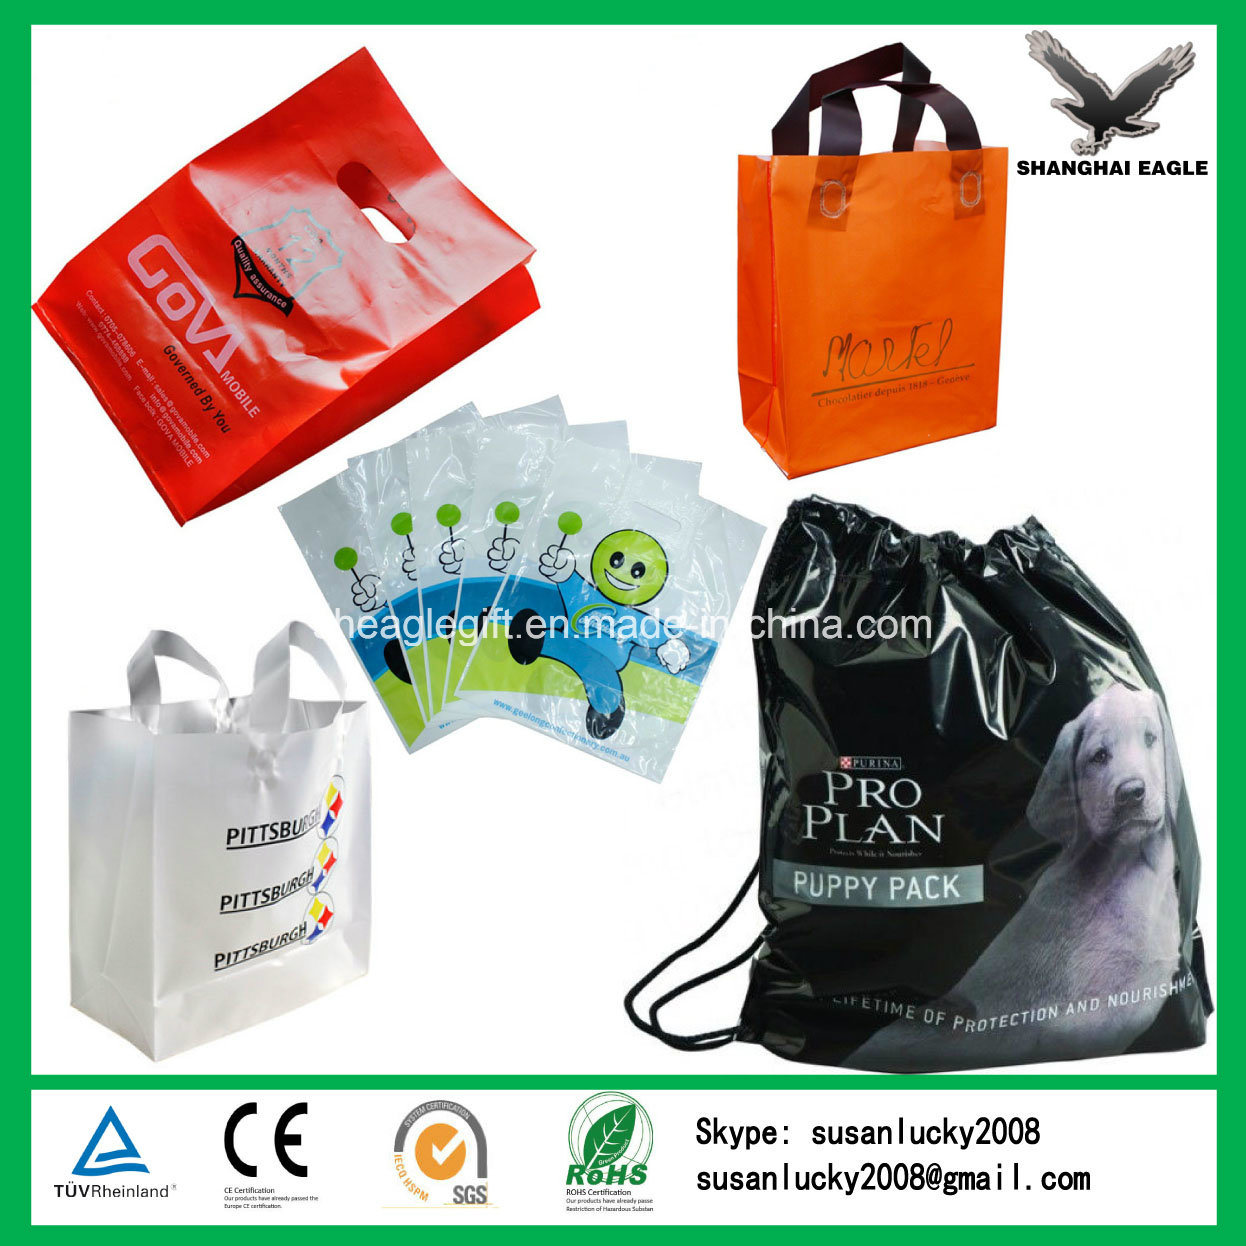 Custom HDPE/LDPE Printed Plastic Bag Manufacture